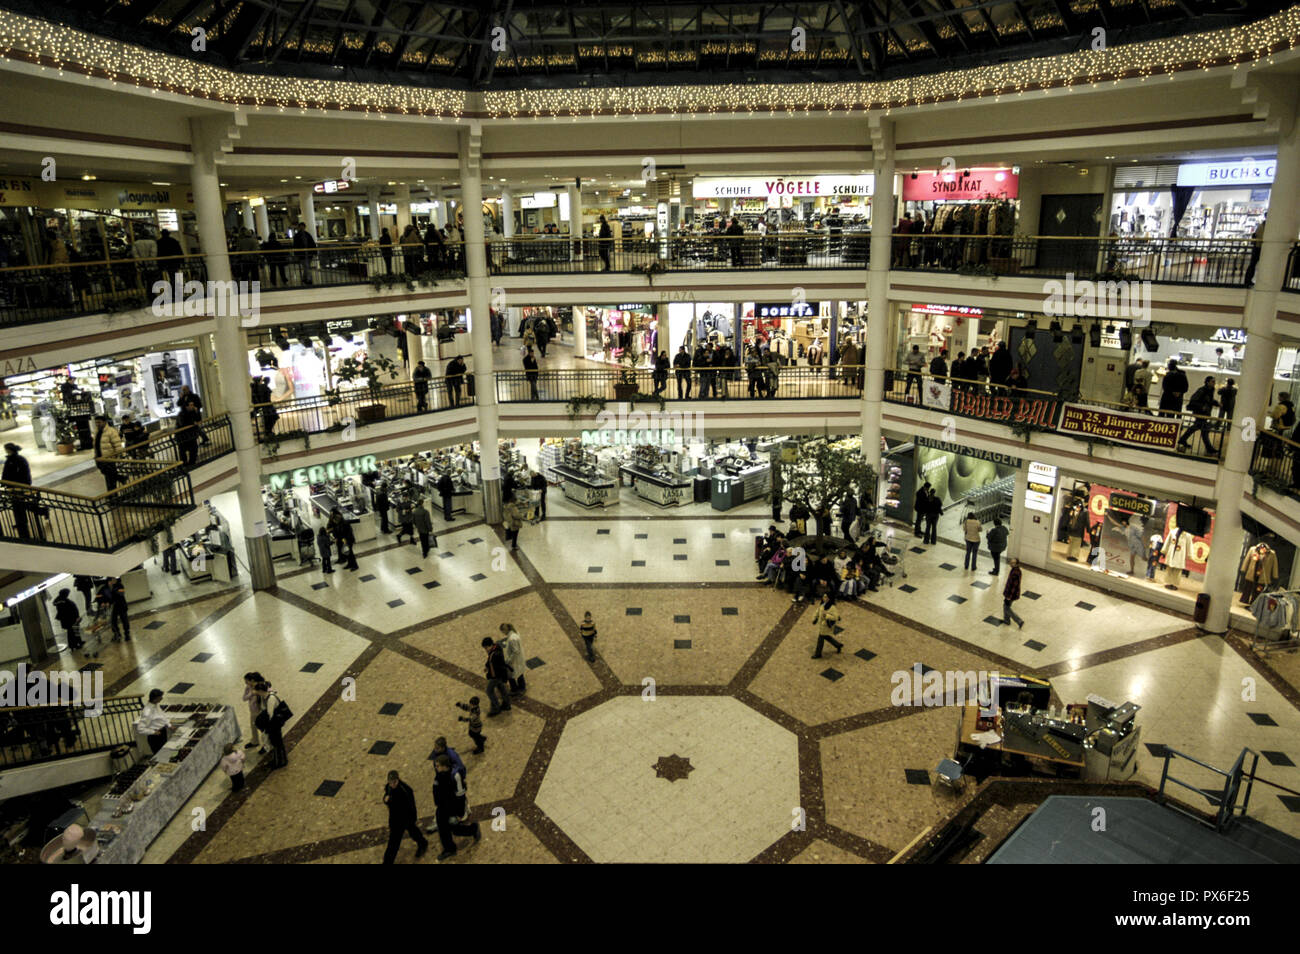 Shopping Center Lugner City Stock Photo 222649005 Alamy